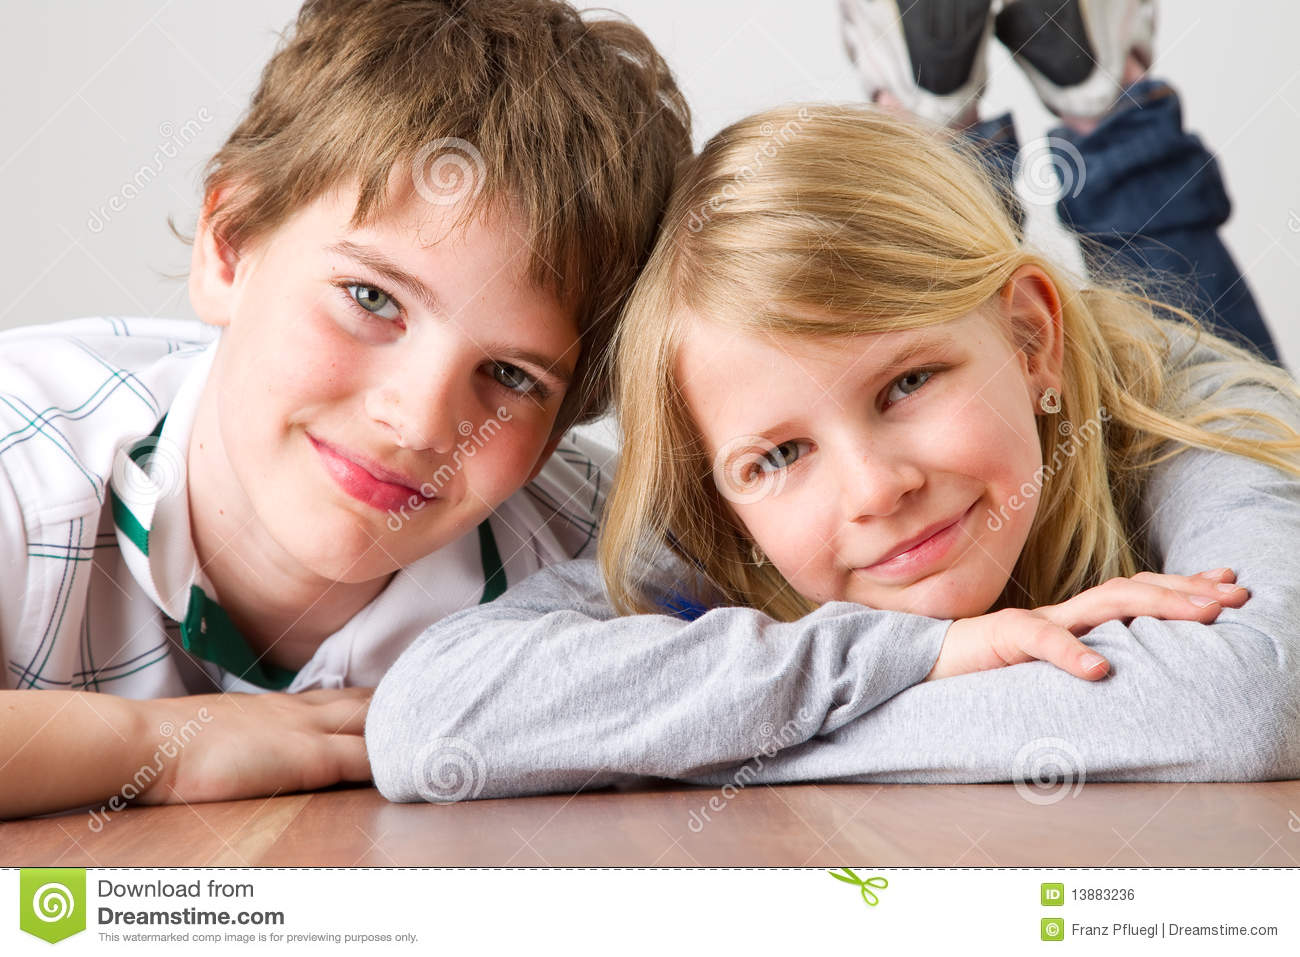 Kid Brother And Sister Royalty Free Stock Image - Image: 13883236